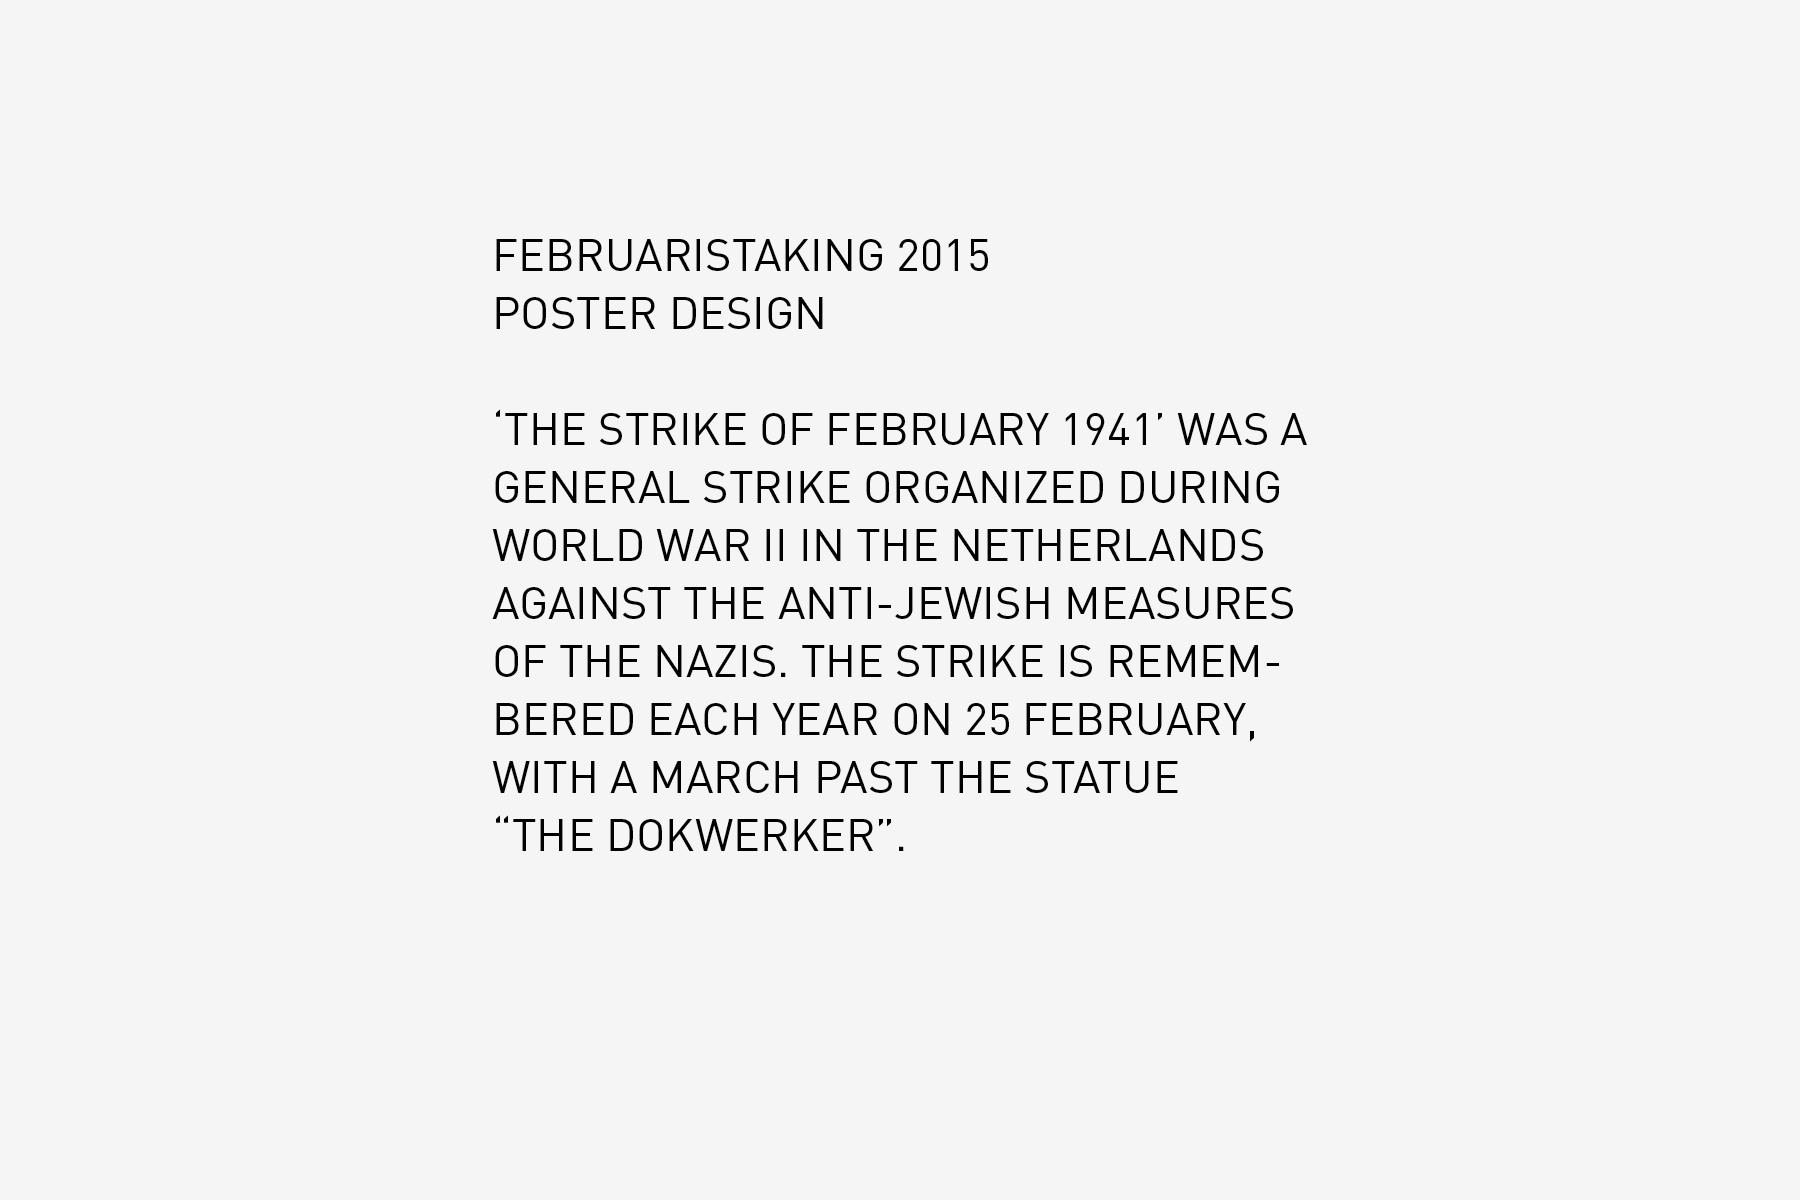 JAN ROTHUIZEN-Februaristaking